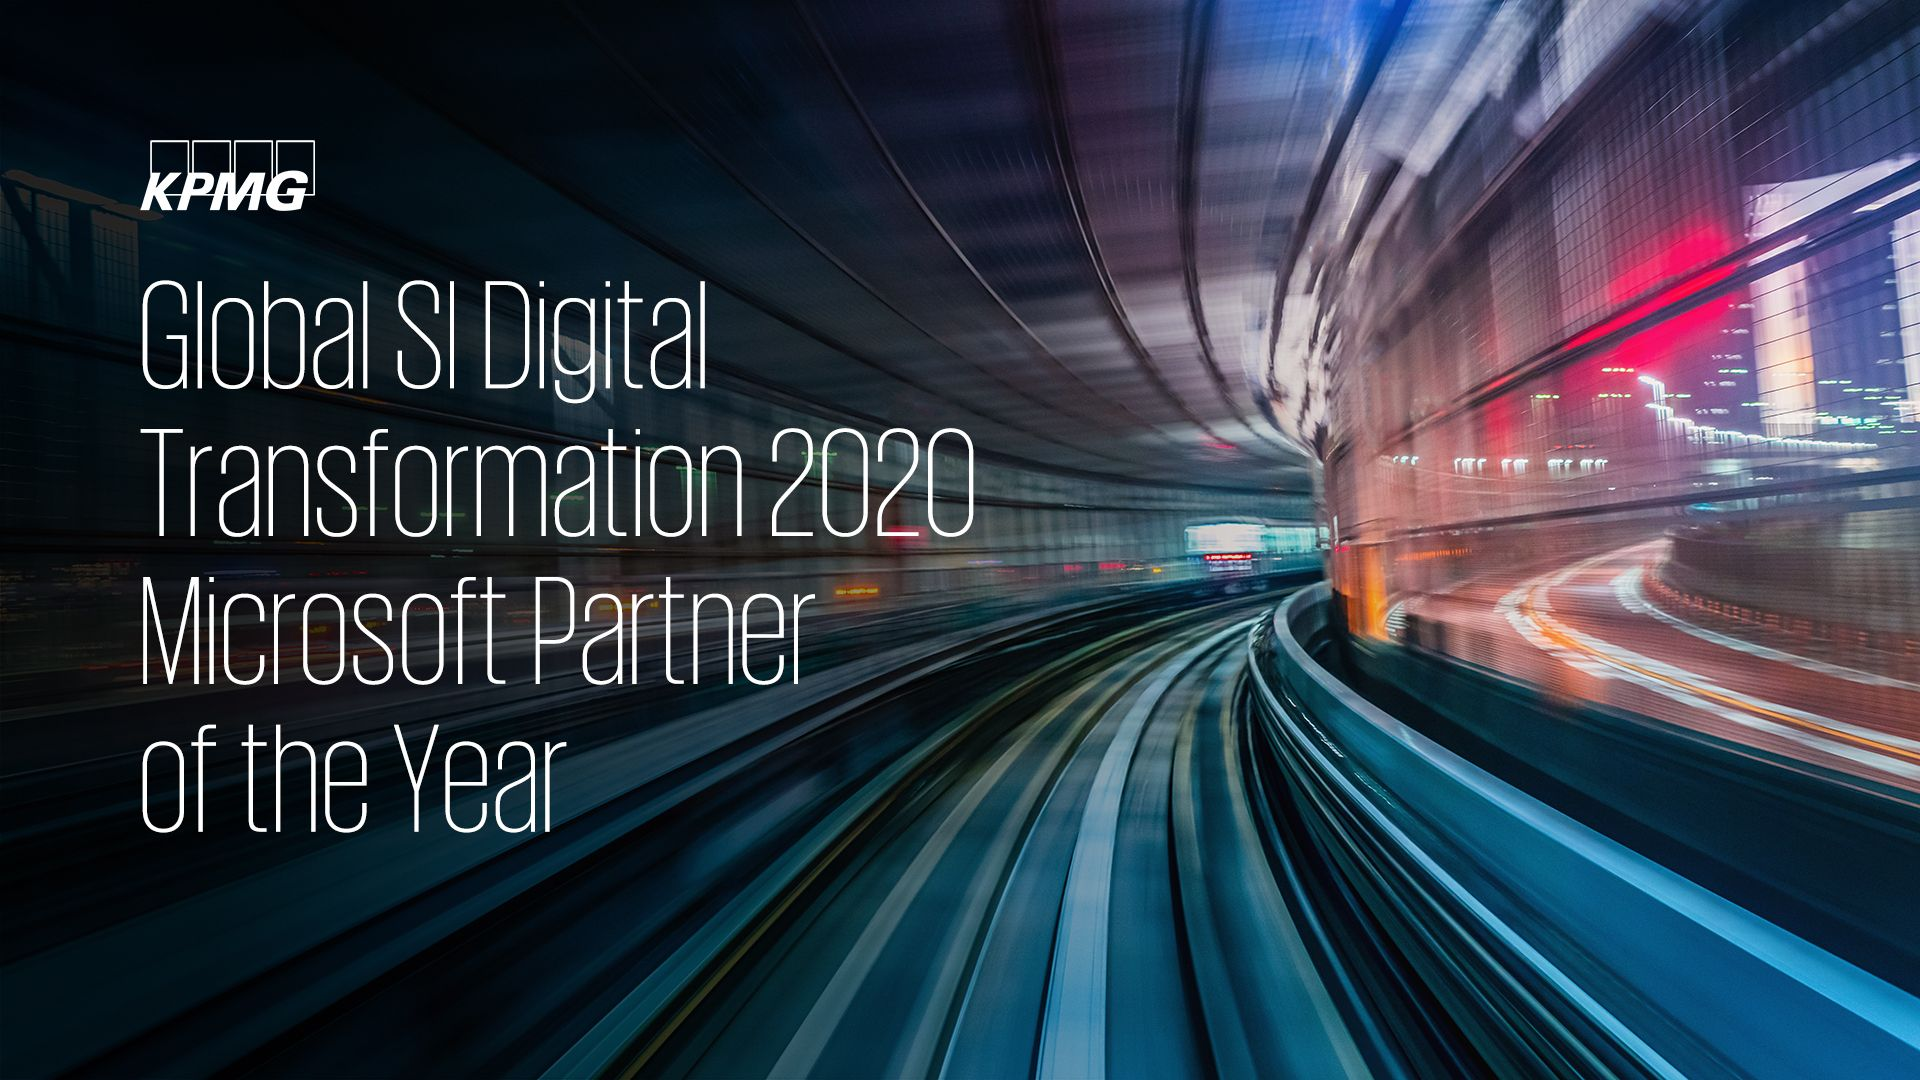 kpmg global si digital transformation 2020 microsoft partner of the year